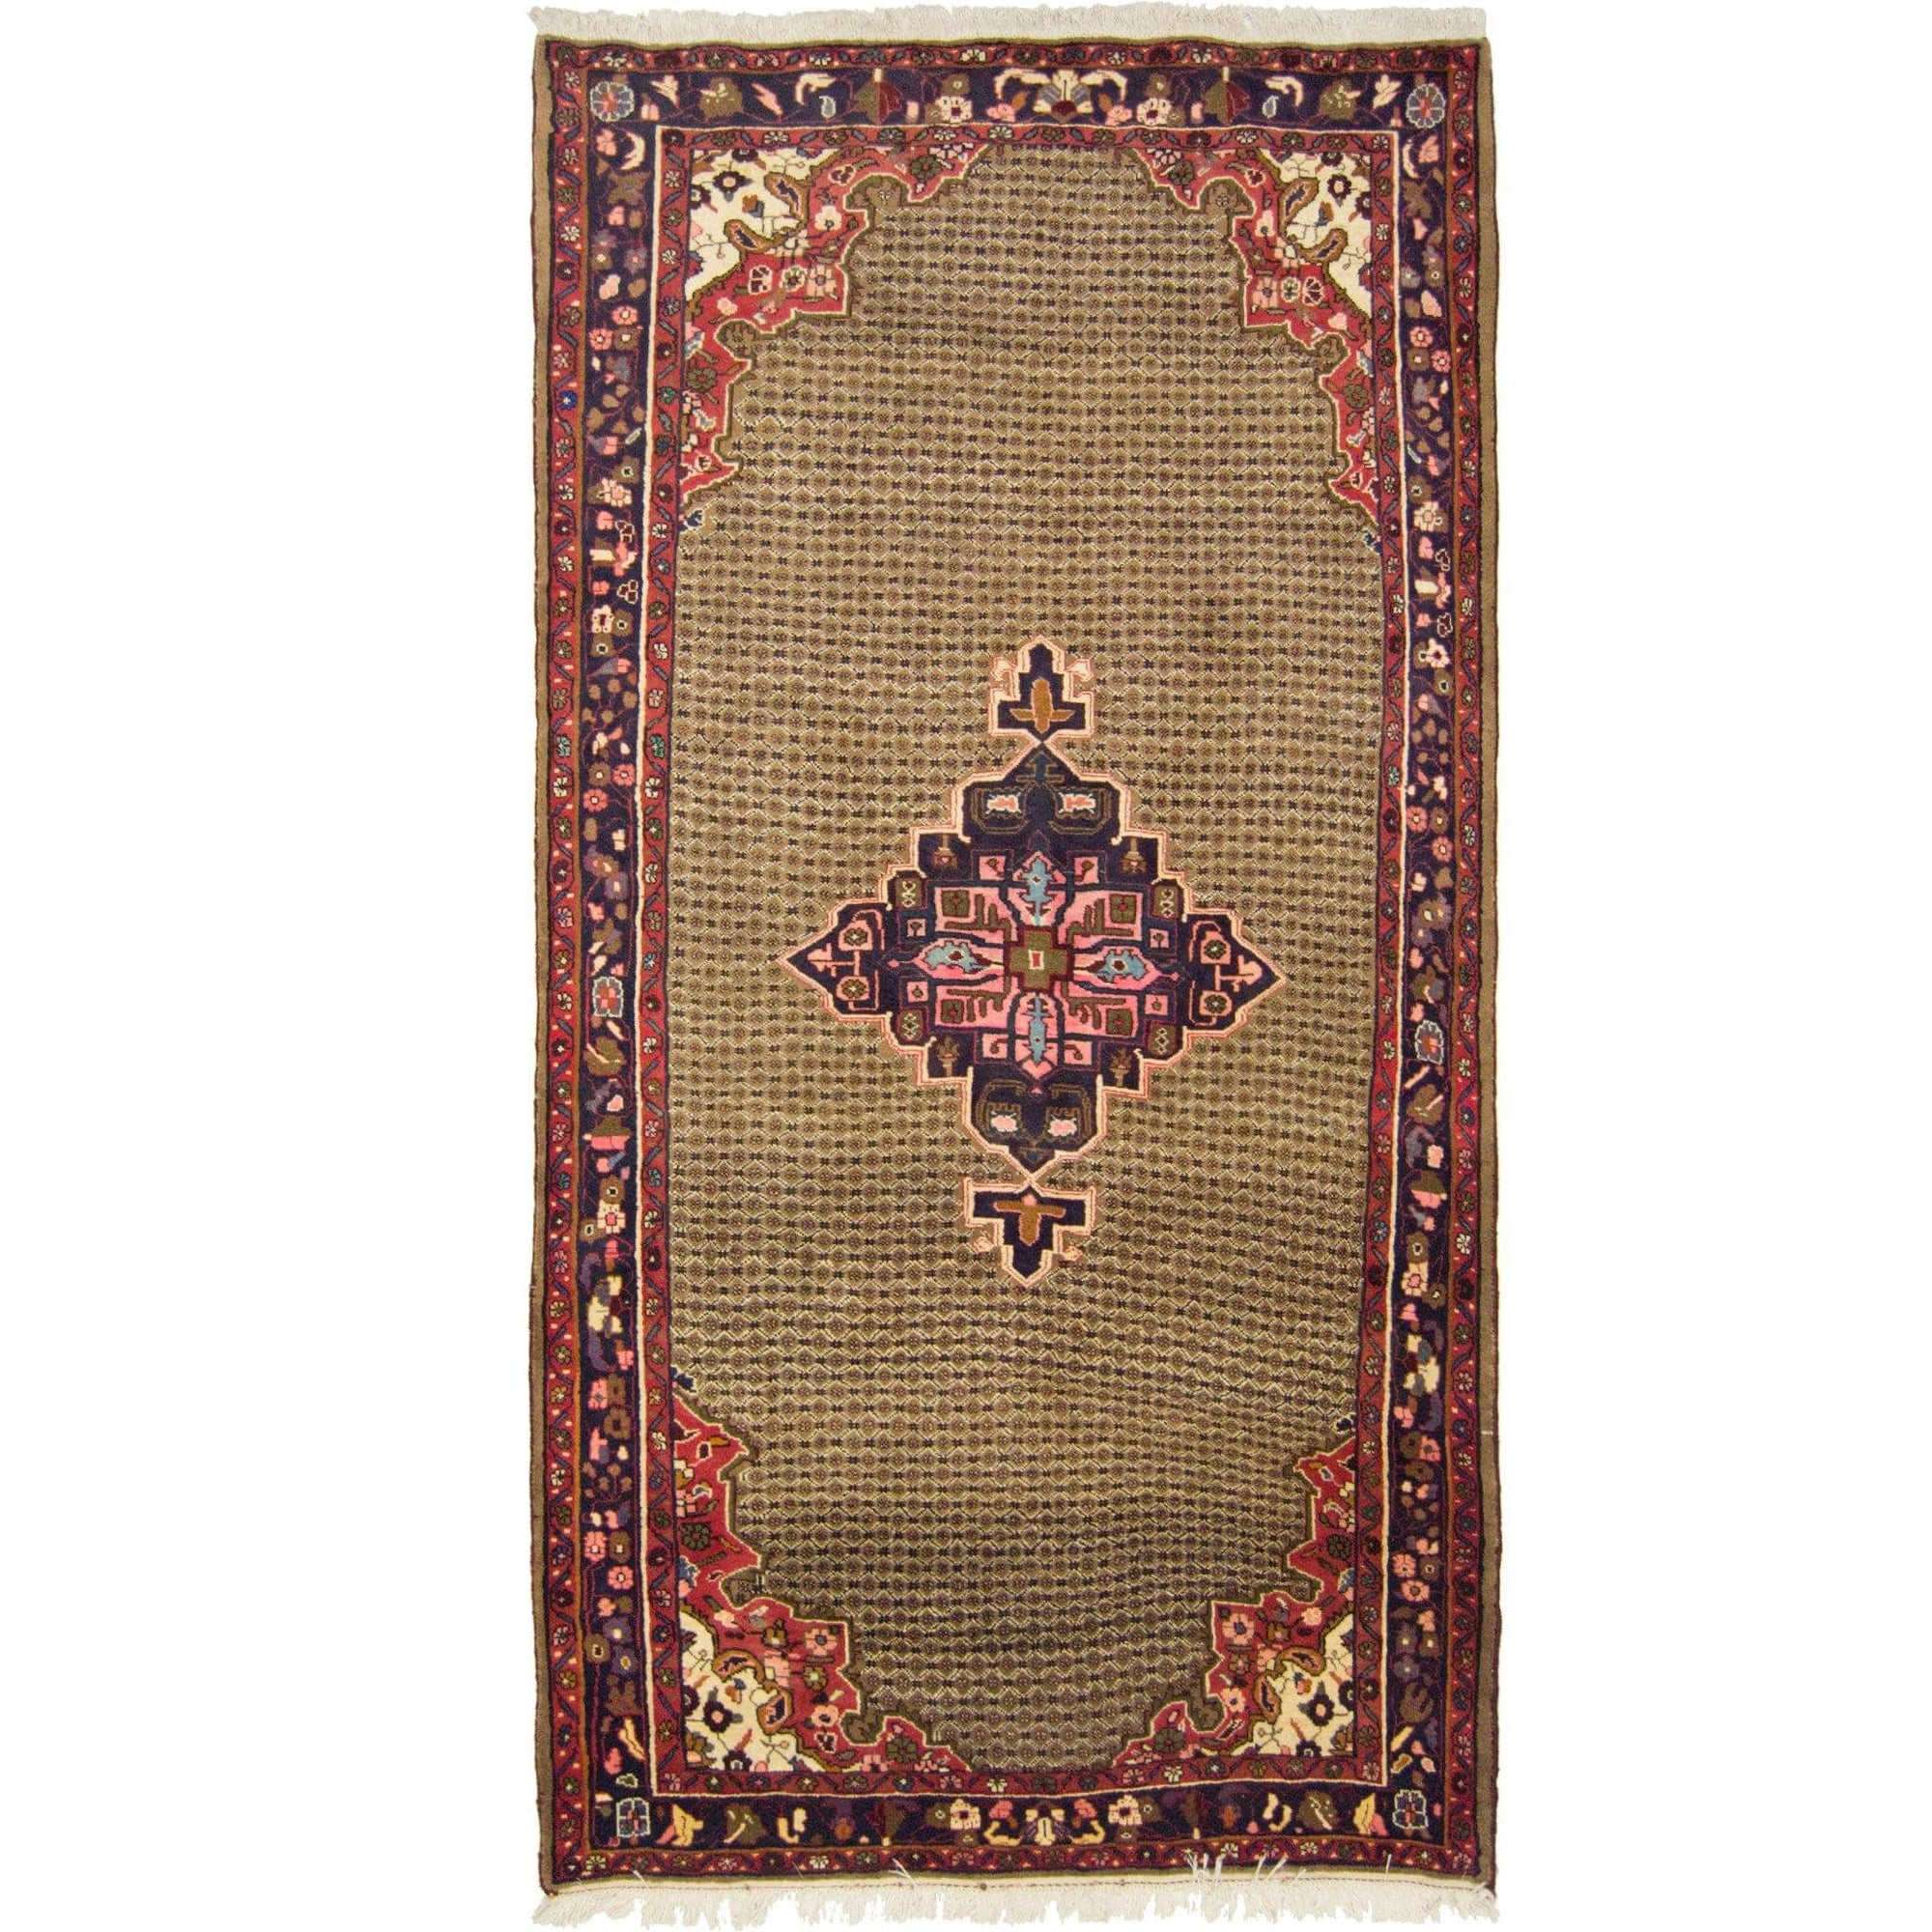 Vintage Hand-knotted Persian Wool Bijar Rug 145cm x 278cm Persian-Rug | House-of-Haghi | NewMarket | Auckland | NZ | Handmade Persian Rugs | Hand Knotted Persian Rugs